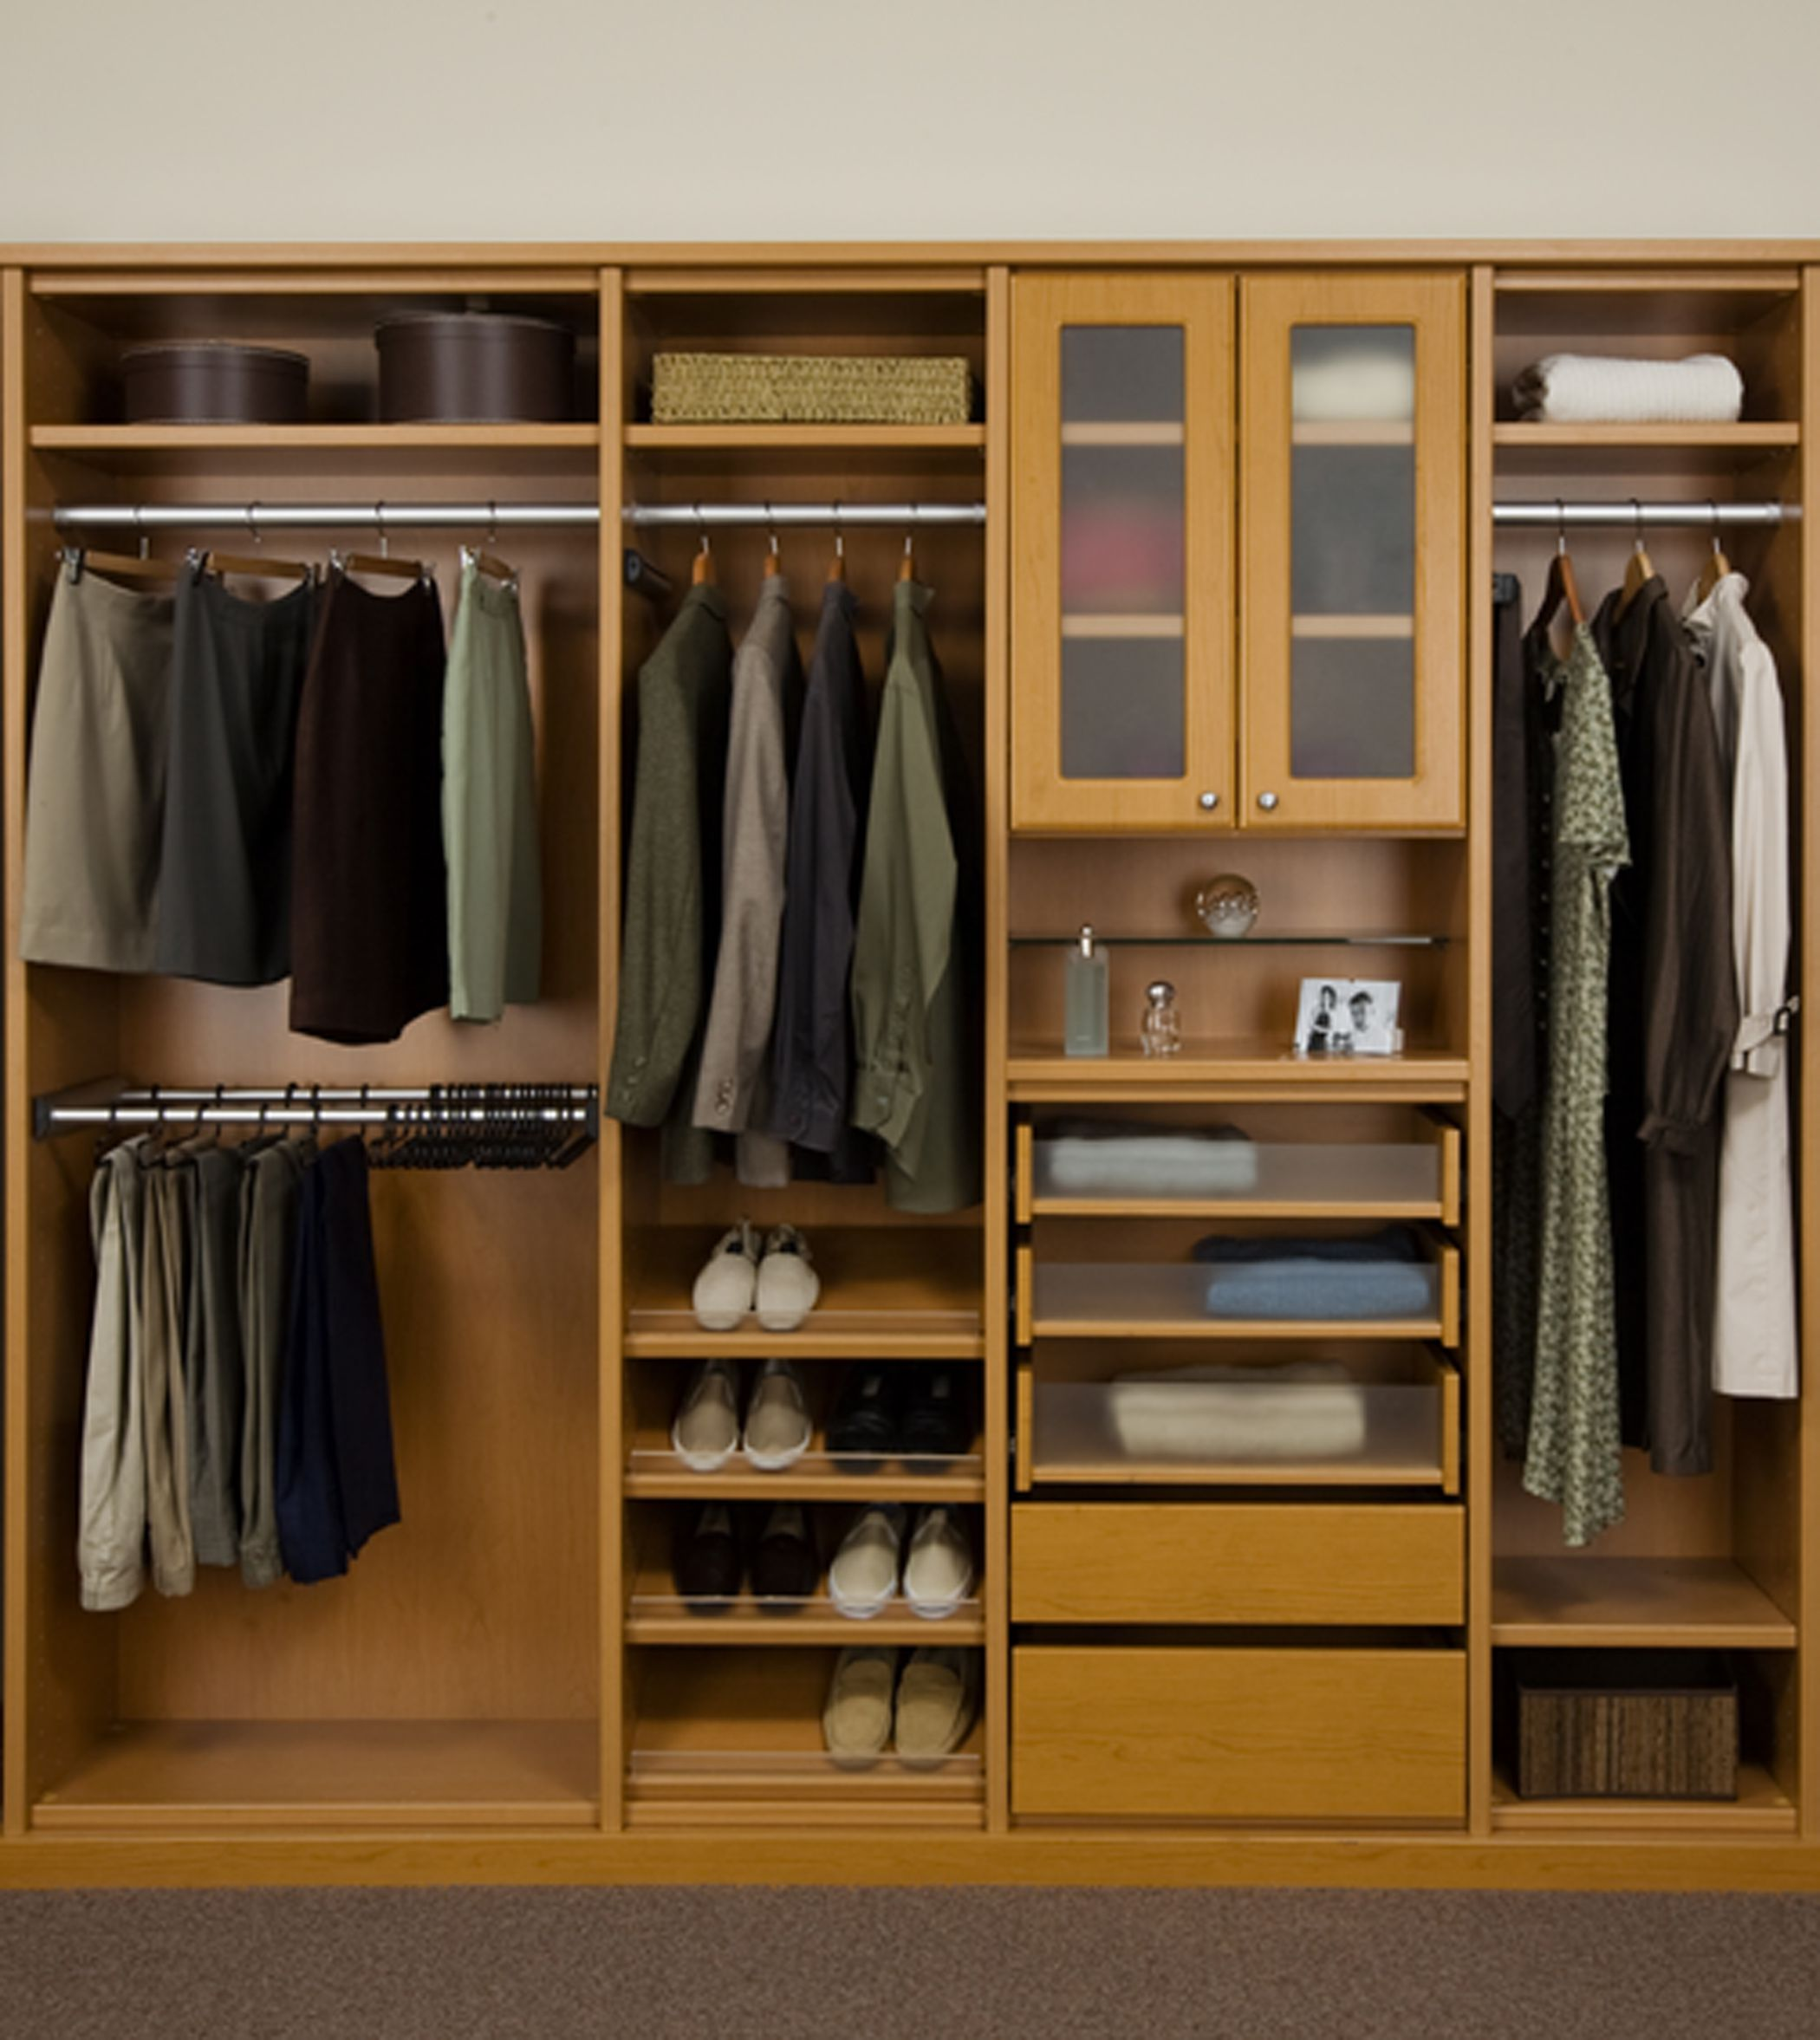 Add Wooden Drawers and Cabinet for Tidy Closet Organization Ideas with Clothes Hangers and Shoes Shelves